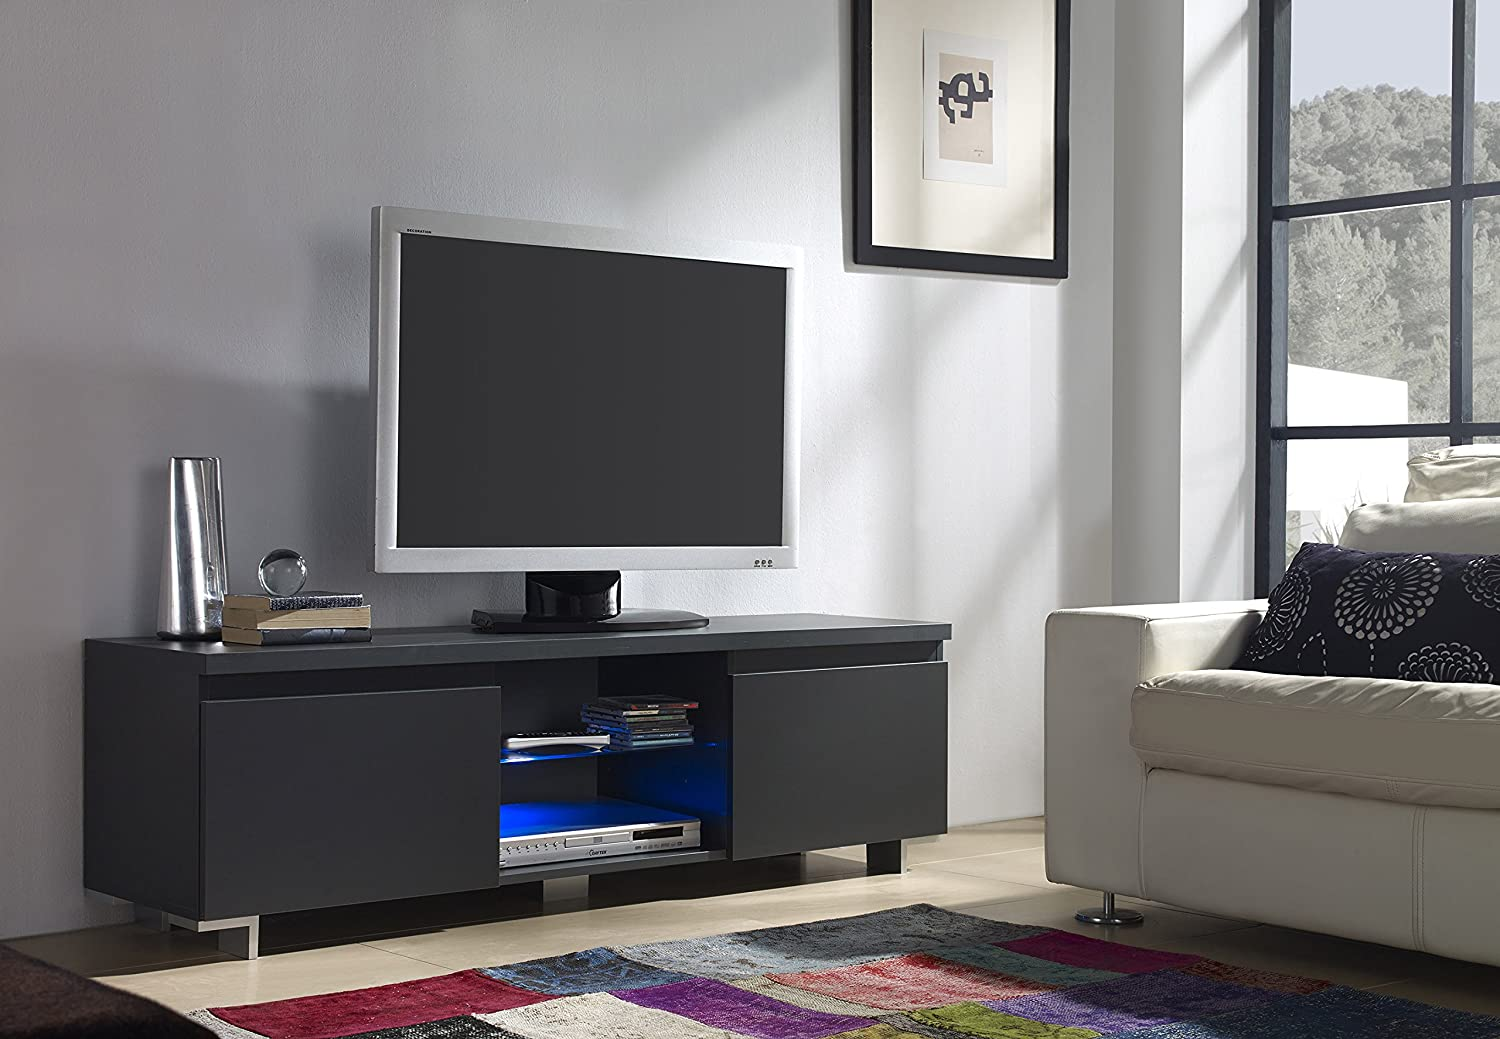 Meuble Tv 2 Porte En Gris Anthracite Avec Led Amazon Fr Cuisine  # Meuble Tv Gris Led